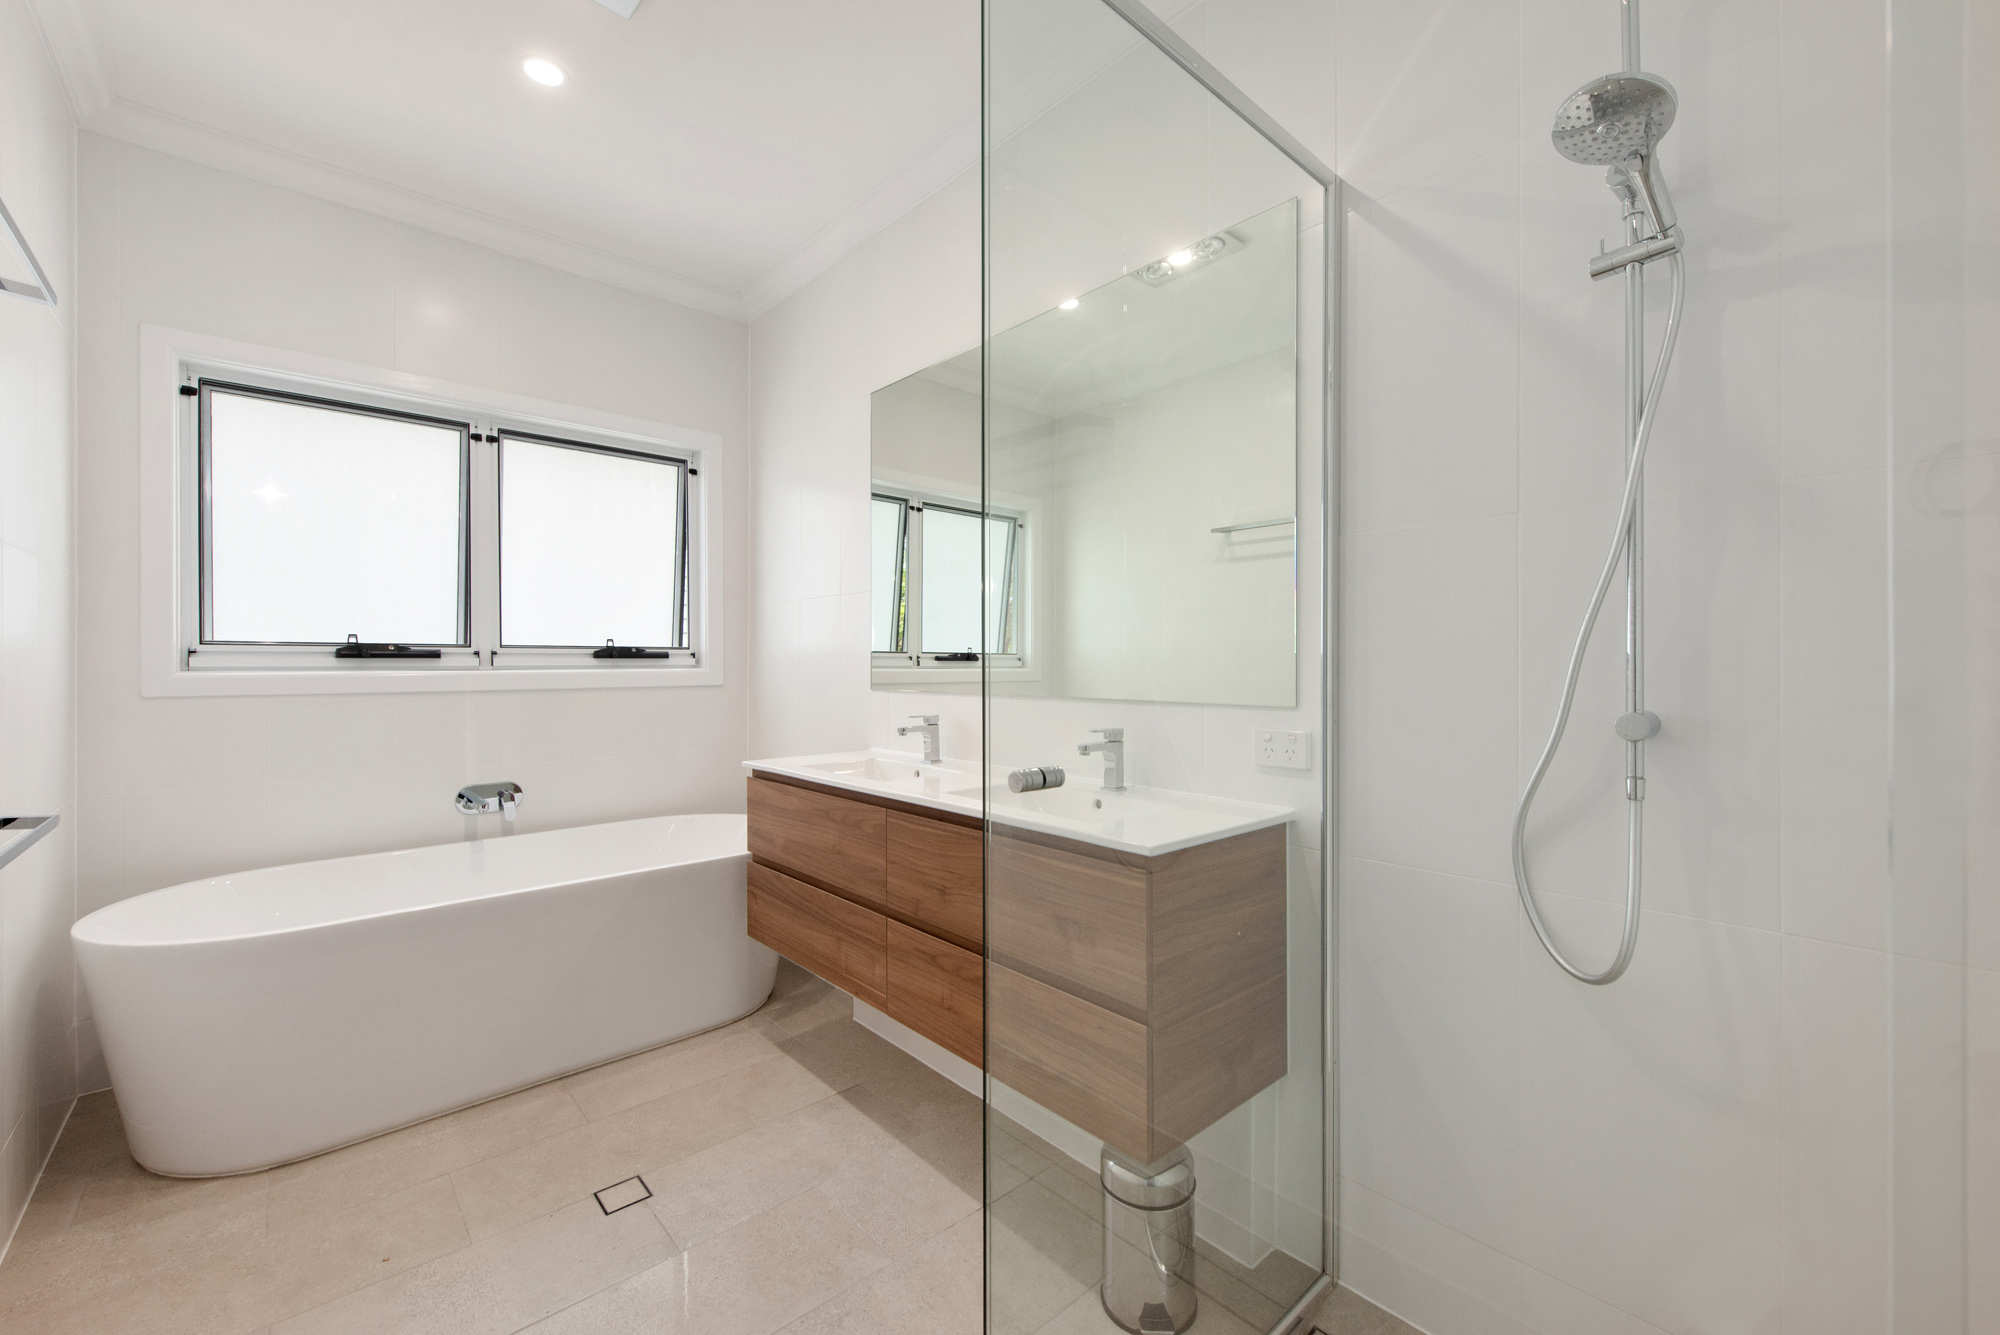 Bathroom for second storey extension St Lucia